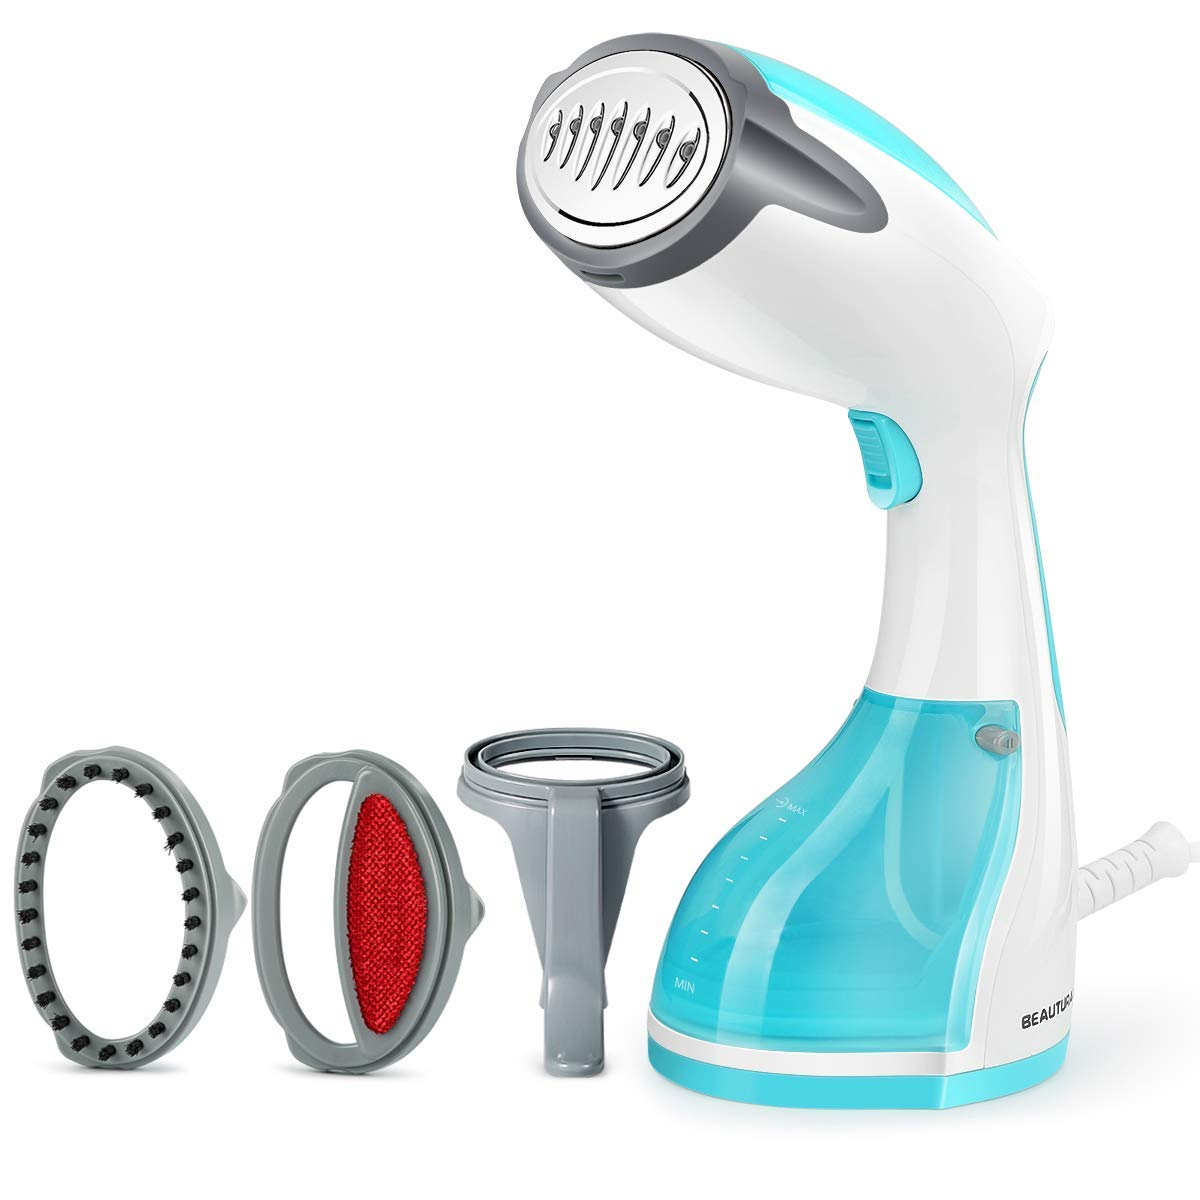 Beautural Garment Steamer Handheld Iron Clothes Steamer Portable Home and Travel Fabric Small Steamer 35s Heat Up with 260ml Removable Water Tank Vertically Horizontally Steam